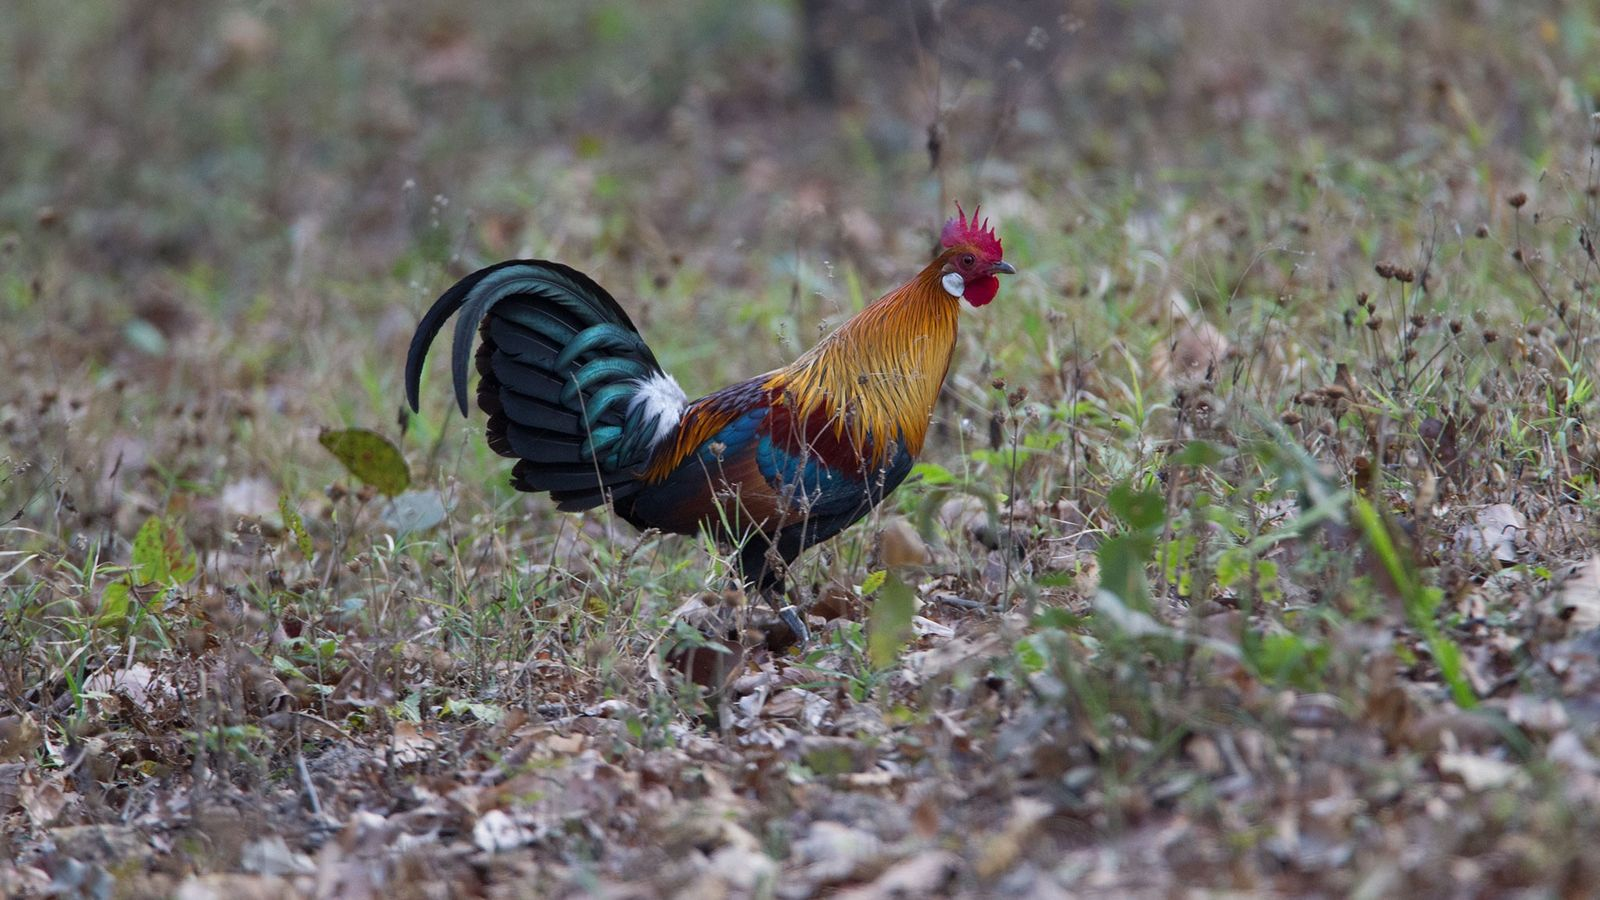 A red junglefowl roams India's Kanha Tiger Reserve. Domesticated chickens evolved from this species about 8,000 ...